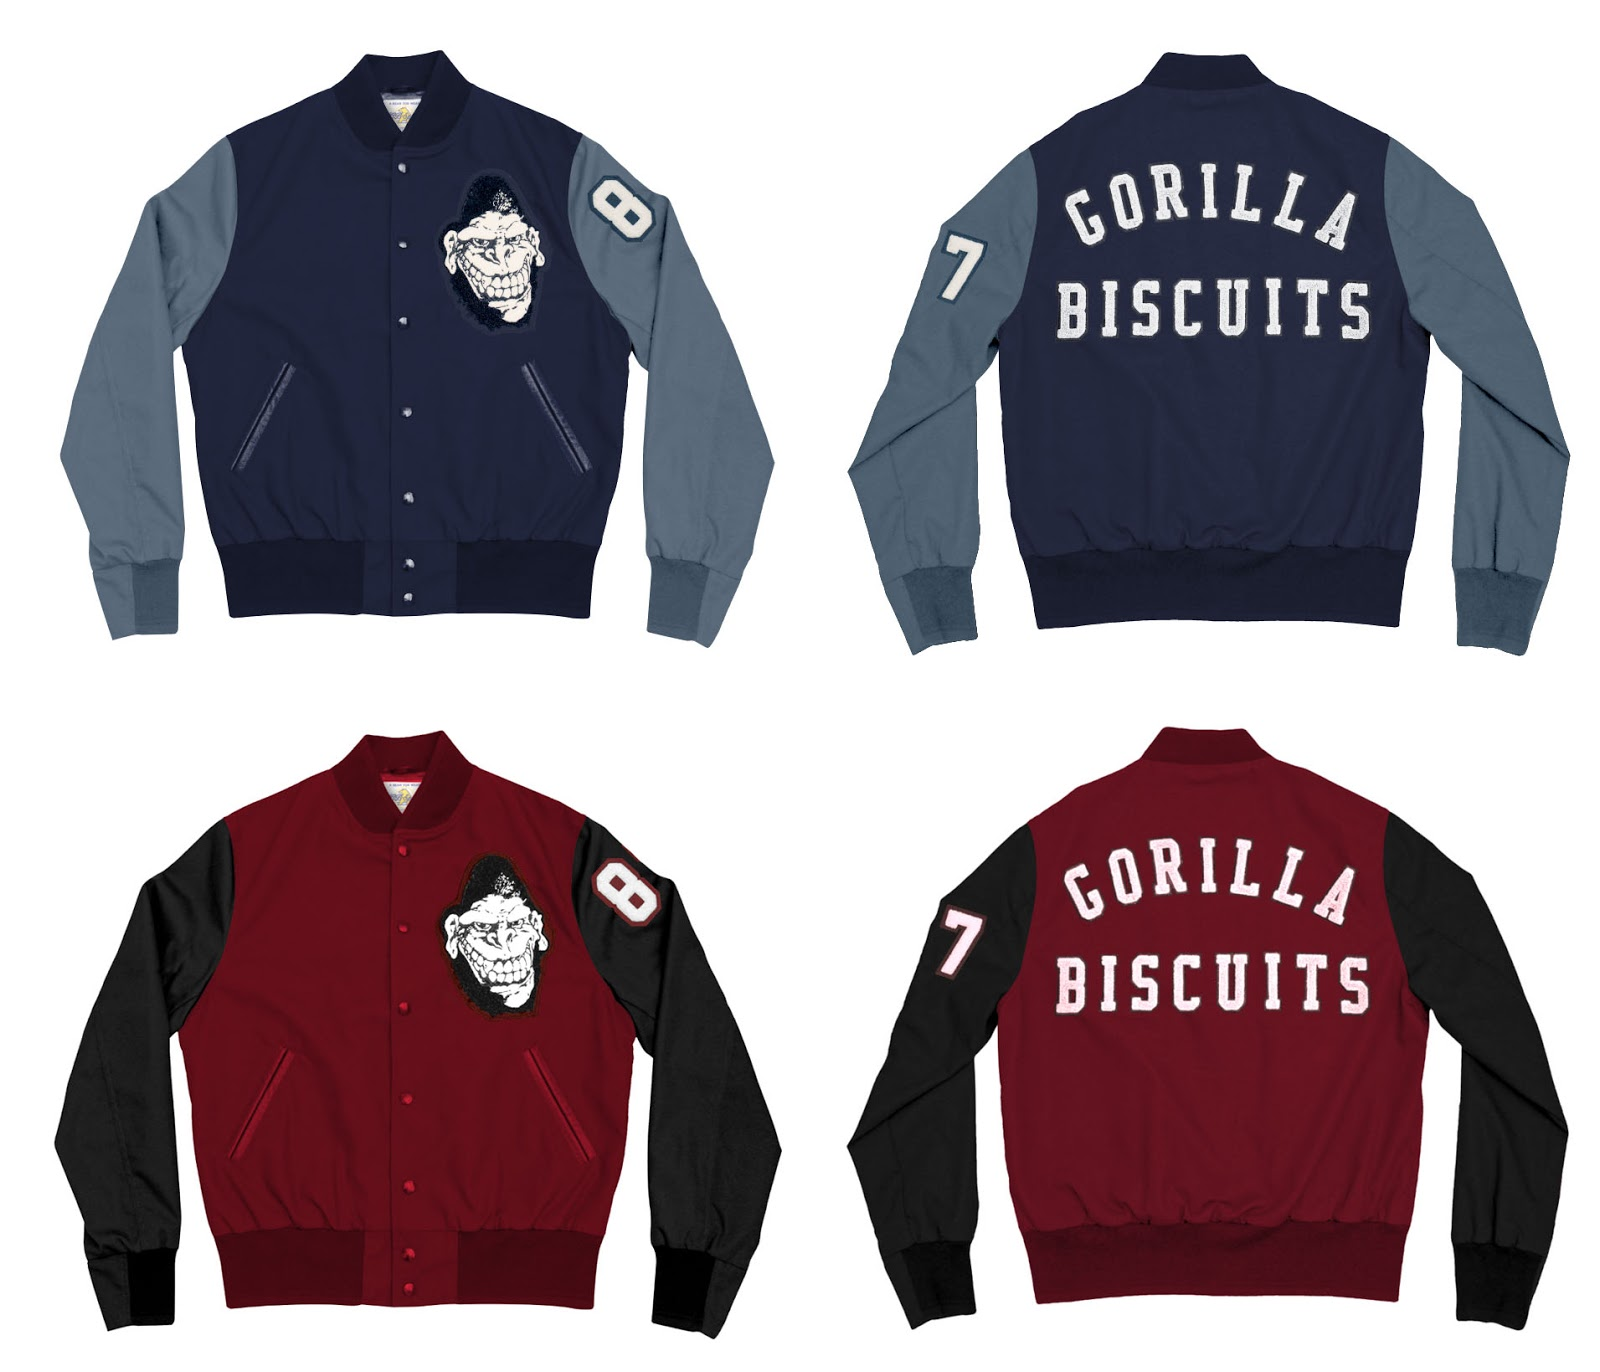 4ef4a6128 Collecting Toyz: Super7's Gorilla Biscuits Varsity Jacket Pre-Order